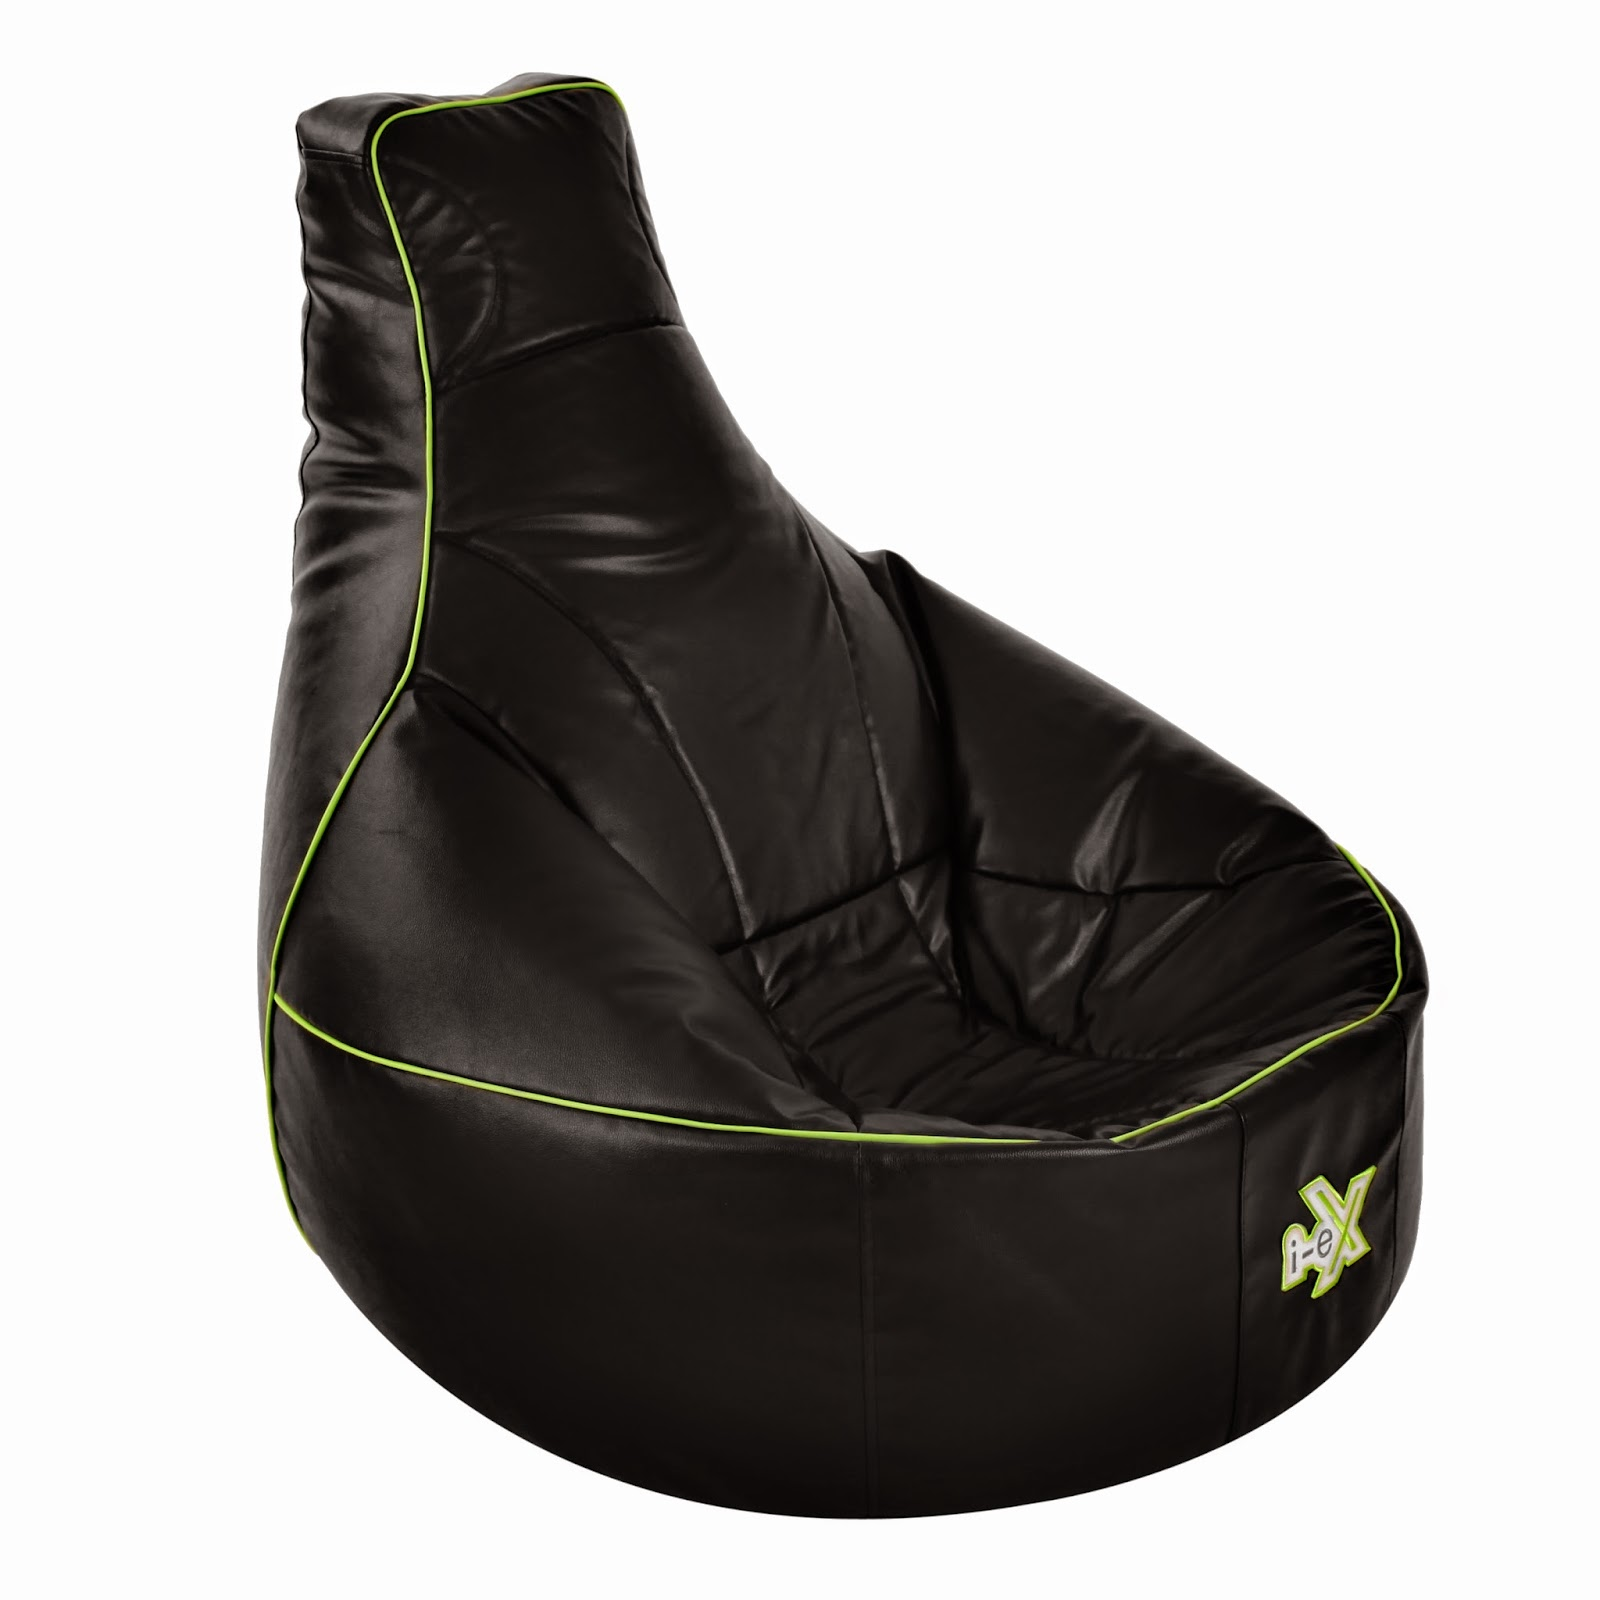 review i ex bean bag gaming chair the test pit. Black Bedroom Furniture Sets. Home Design Ideas